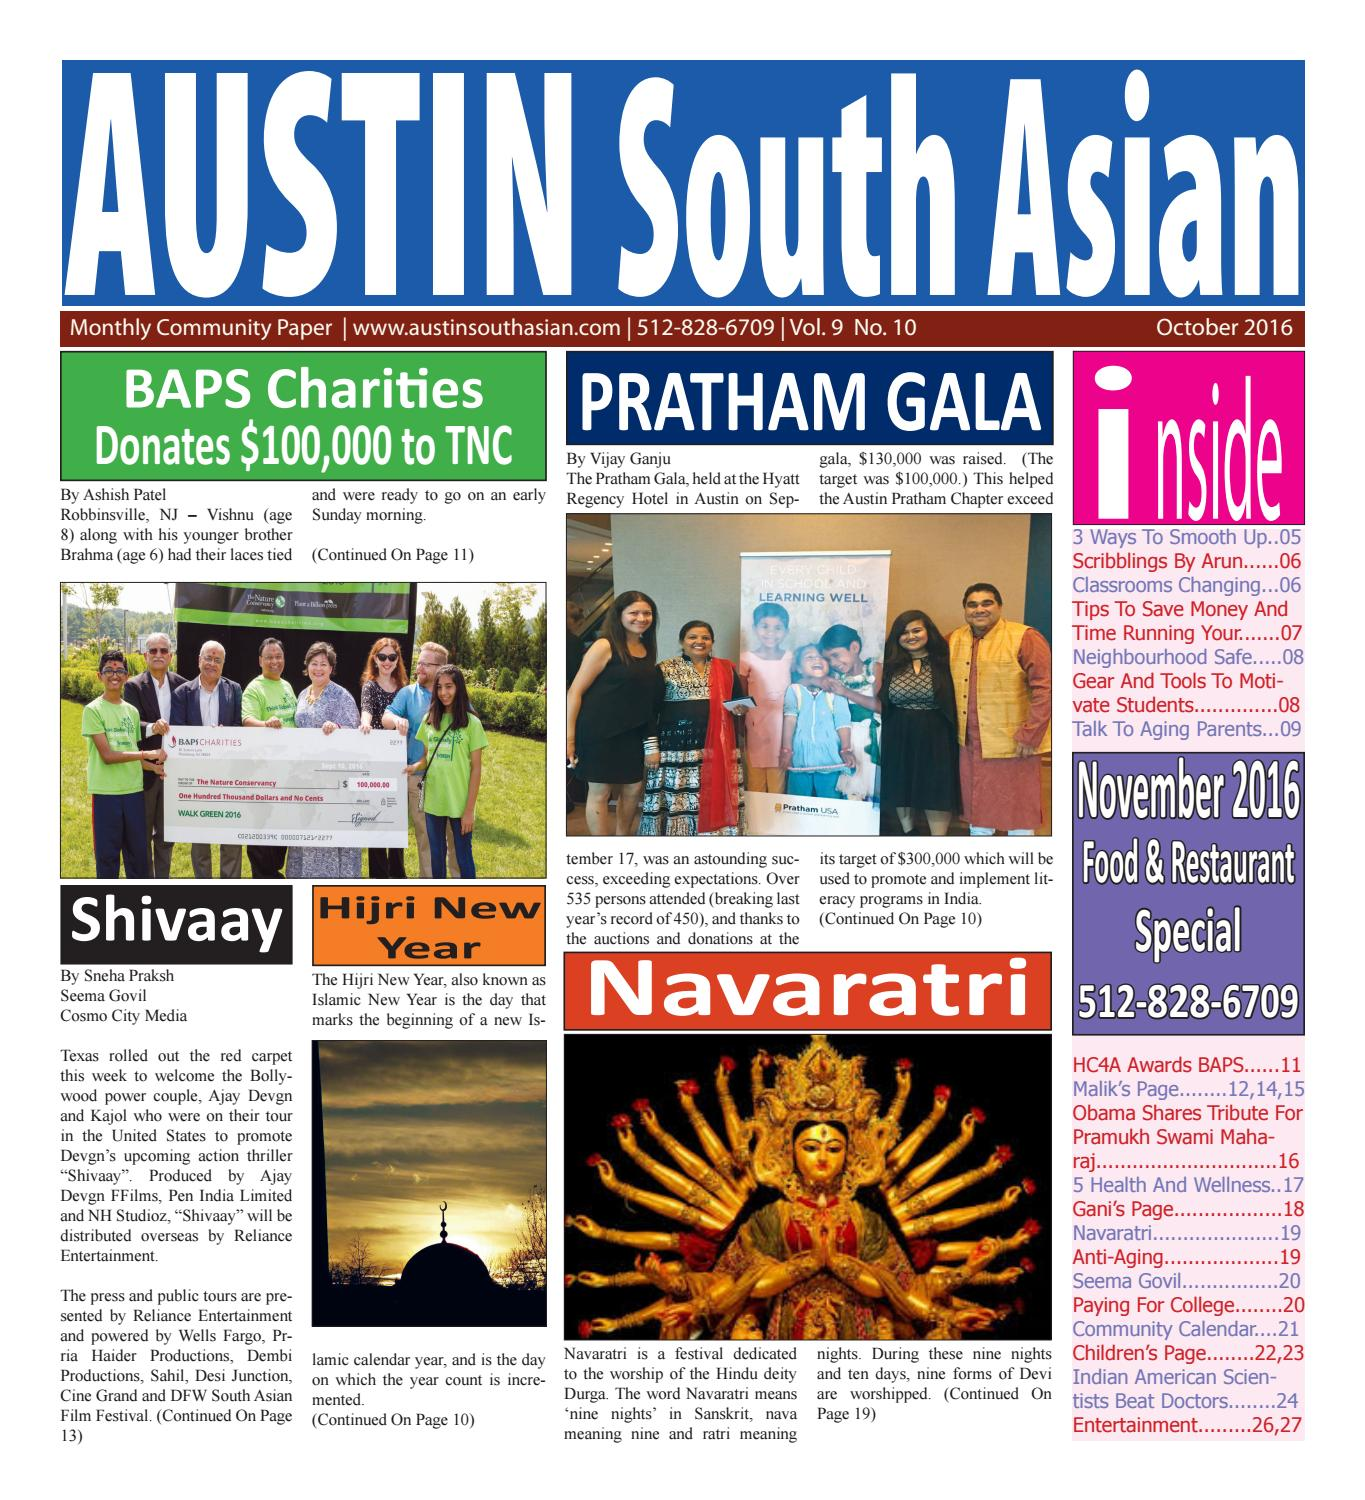 Austin South Asian  Oct  2016 by Austin South Asian - issuu